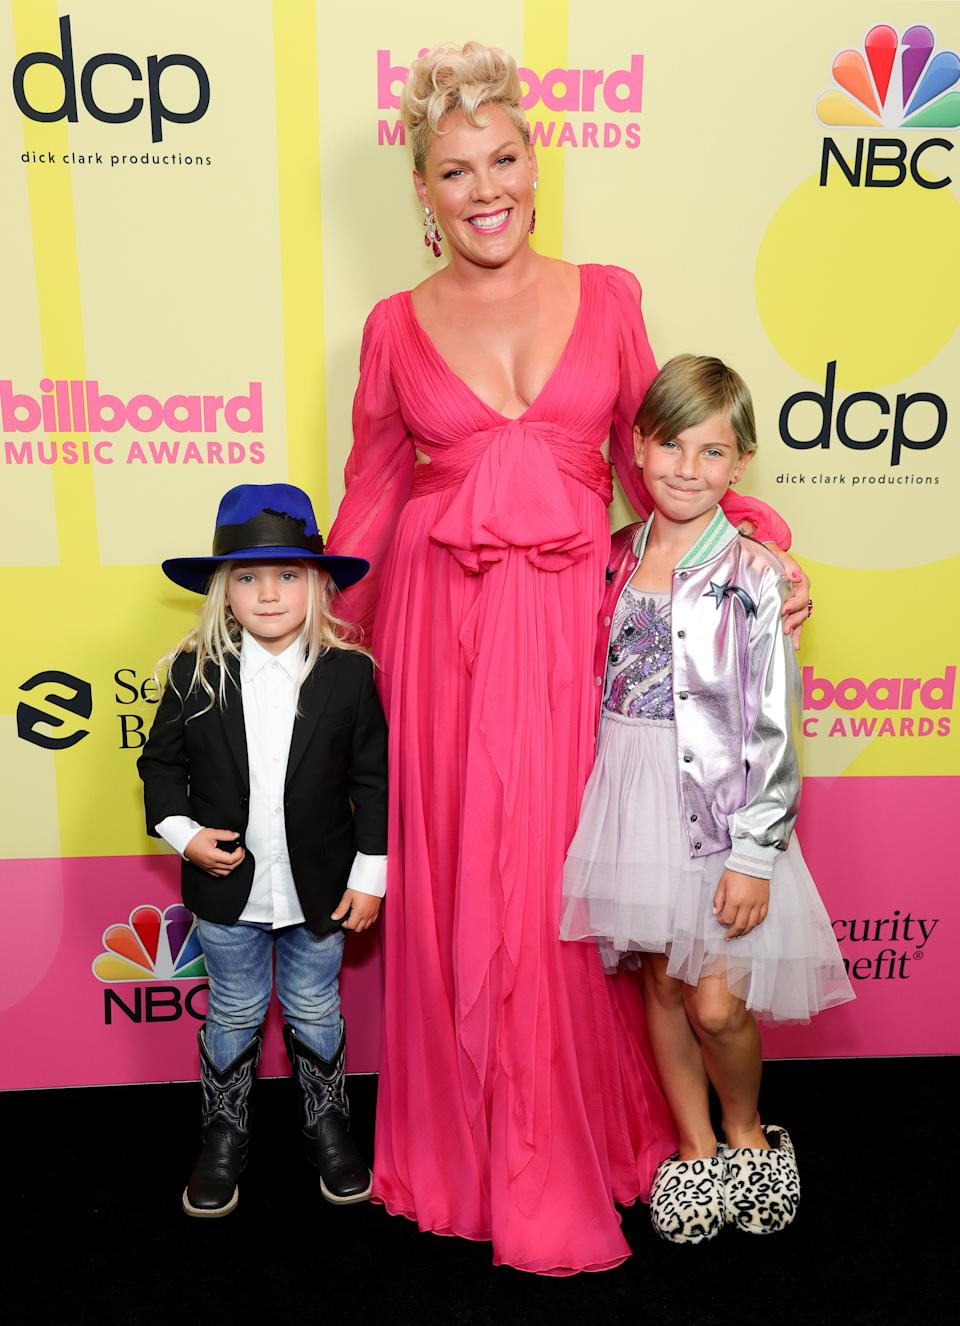 LOS ANGELES, CALIFORNIA - MAY 23: (L-R) In this image released on May 23, Jameson Moon Hart, P!nk, and Willow Sage Hart pose backstage for the 2021 Billboard Music Awards, broadcast on May 23, 2021 at Microsoft Theater in Los Angeles, California. (Photo by Rich Fury/Getty Images for dcp)